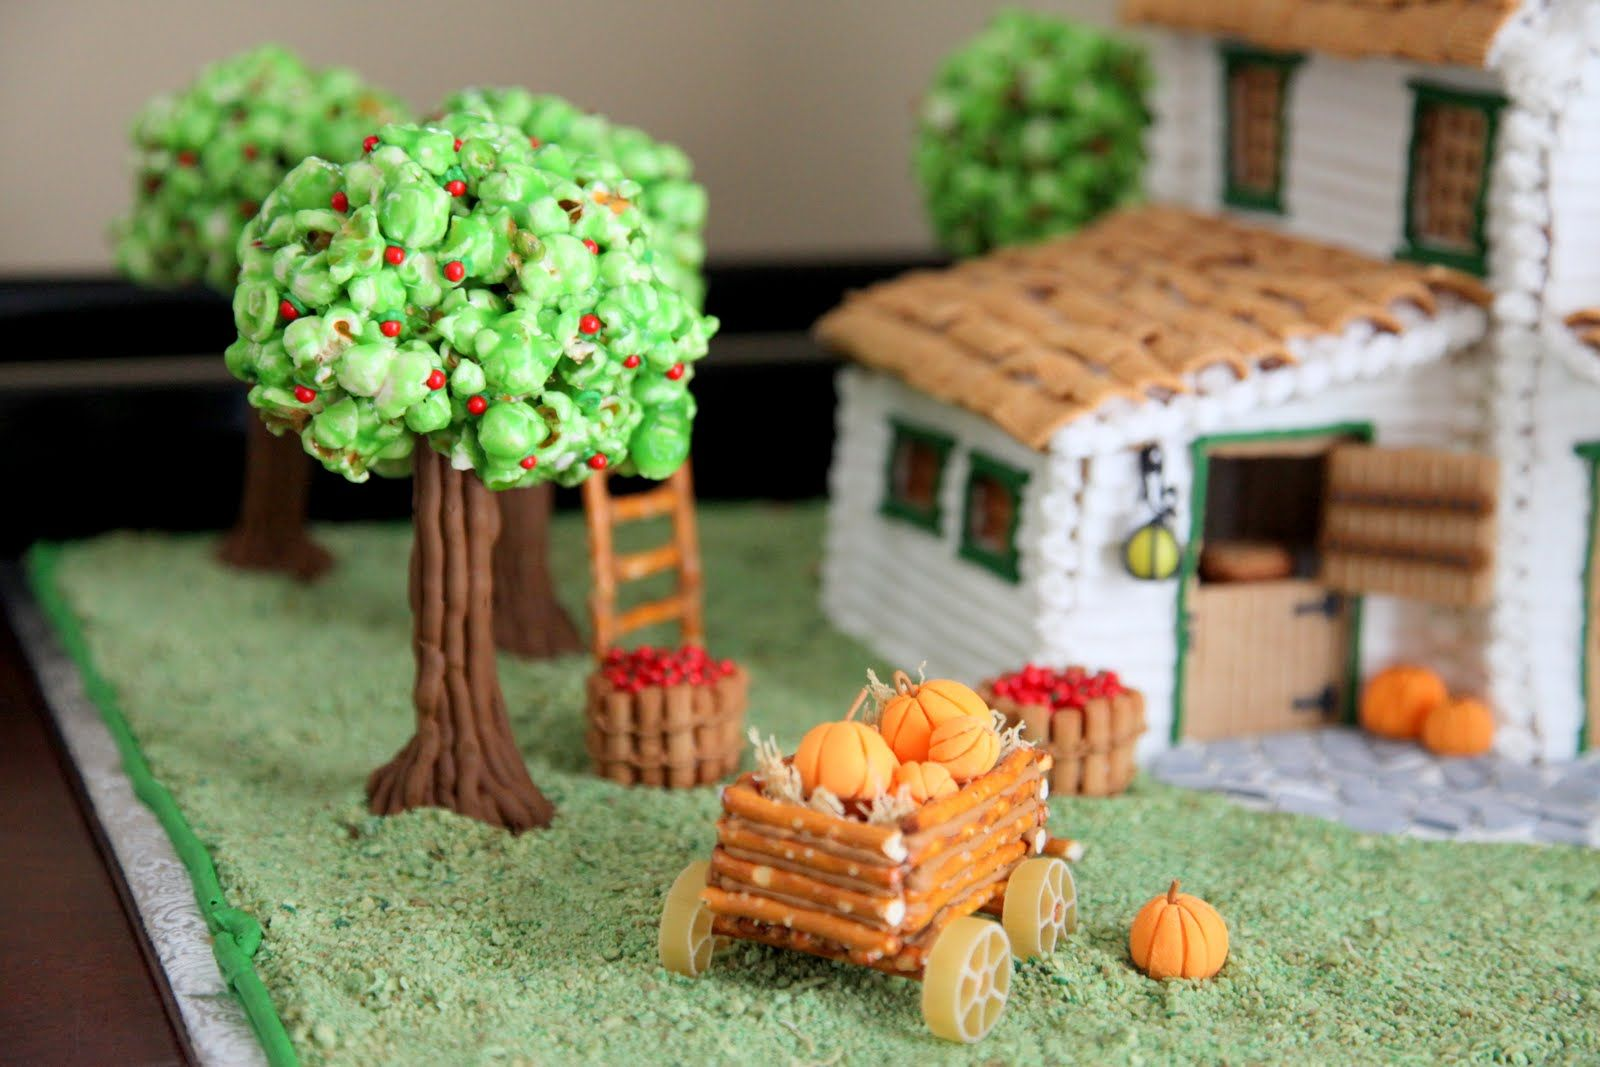 Love the popcorn ball trees and the pretzel wagons